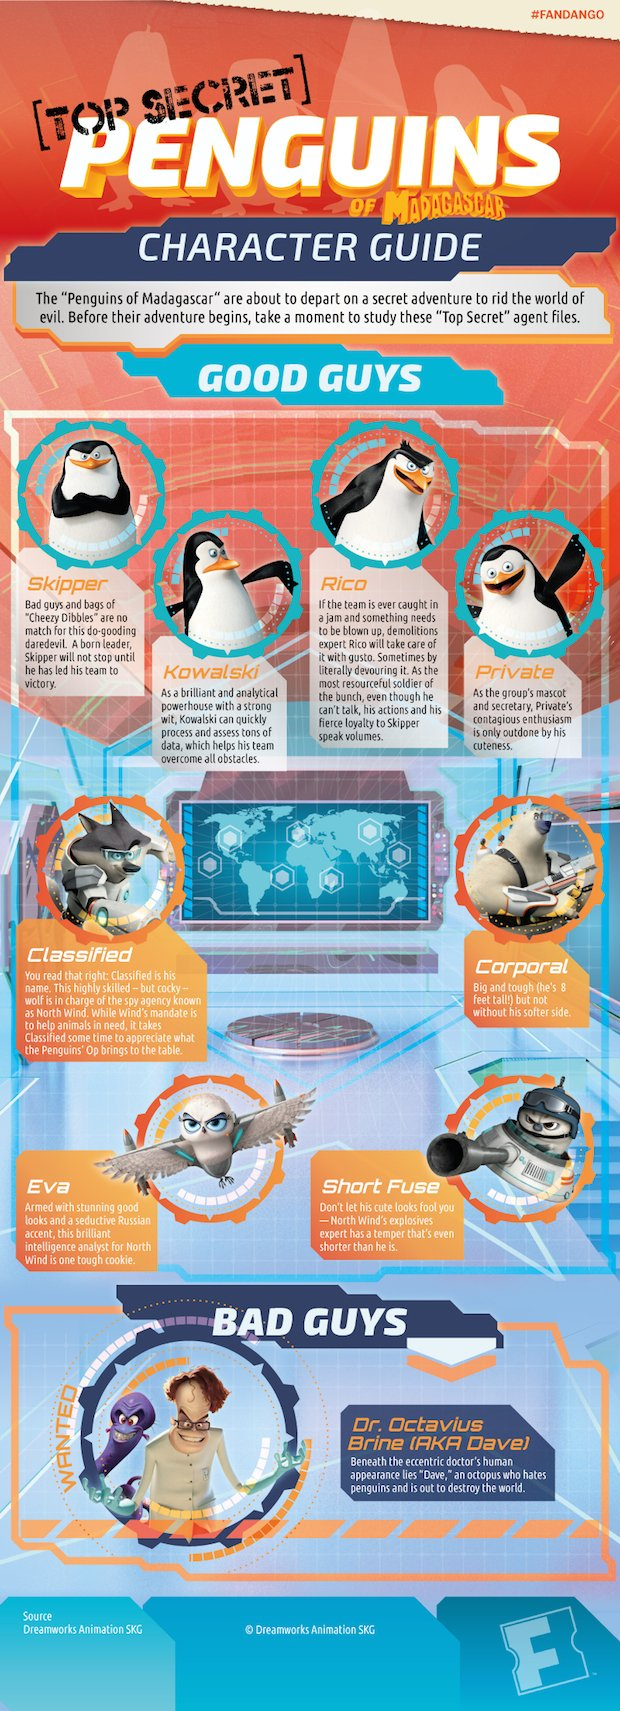 Penguins of Madagascar Character Guide_Final